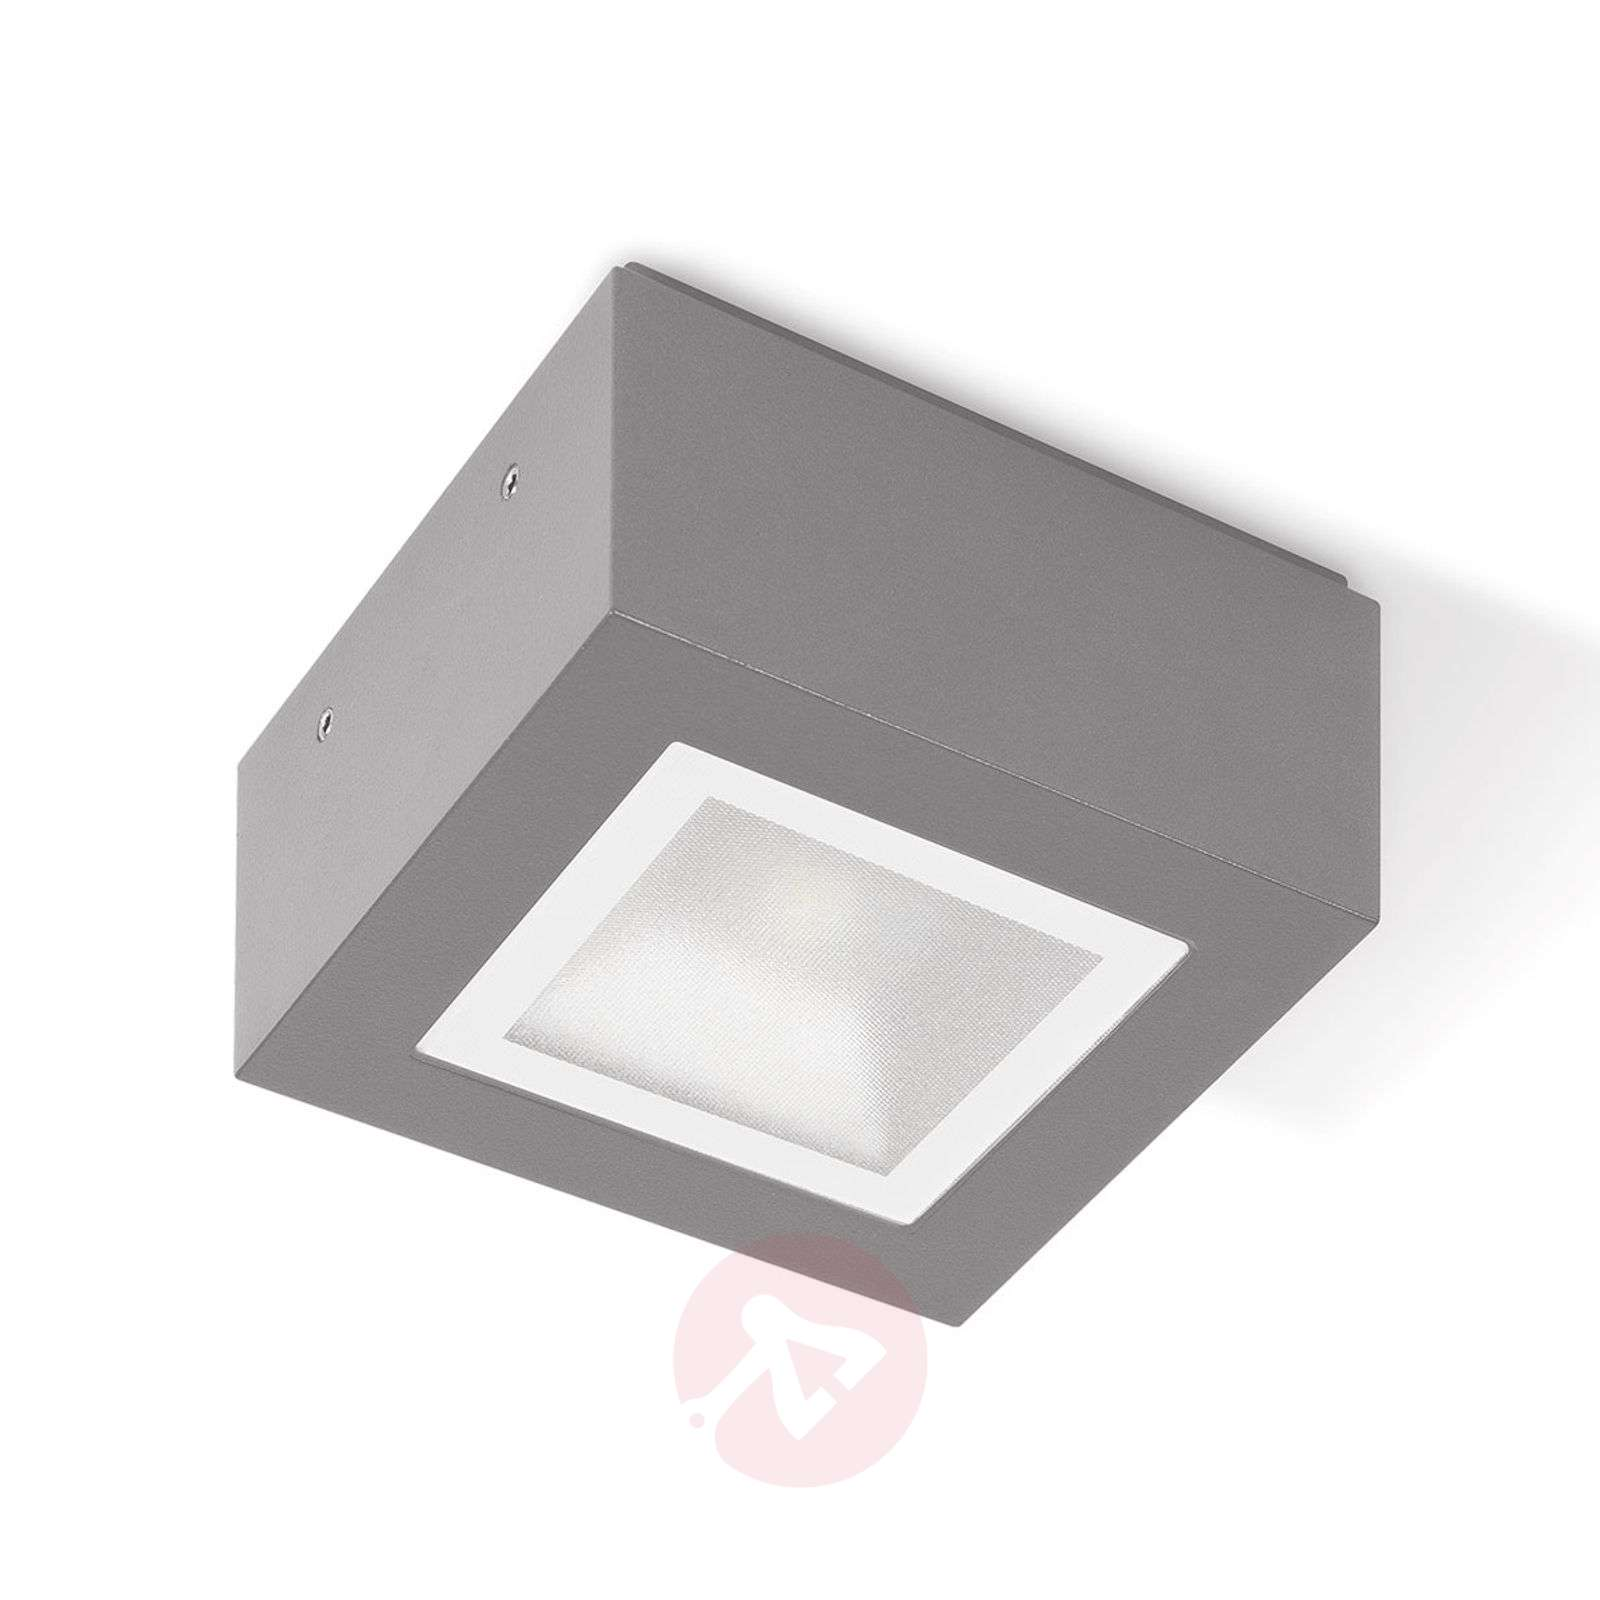 Plafonnier LED Mimik 10 Tech microprismes-8542167X-01